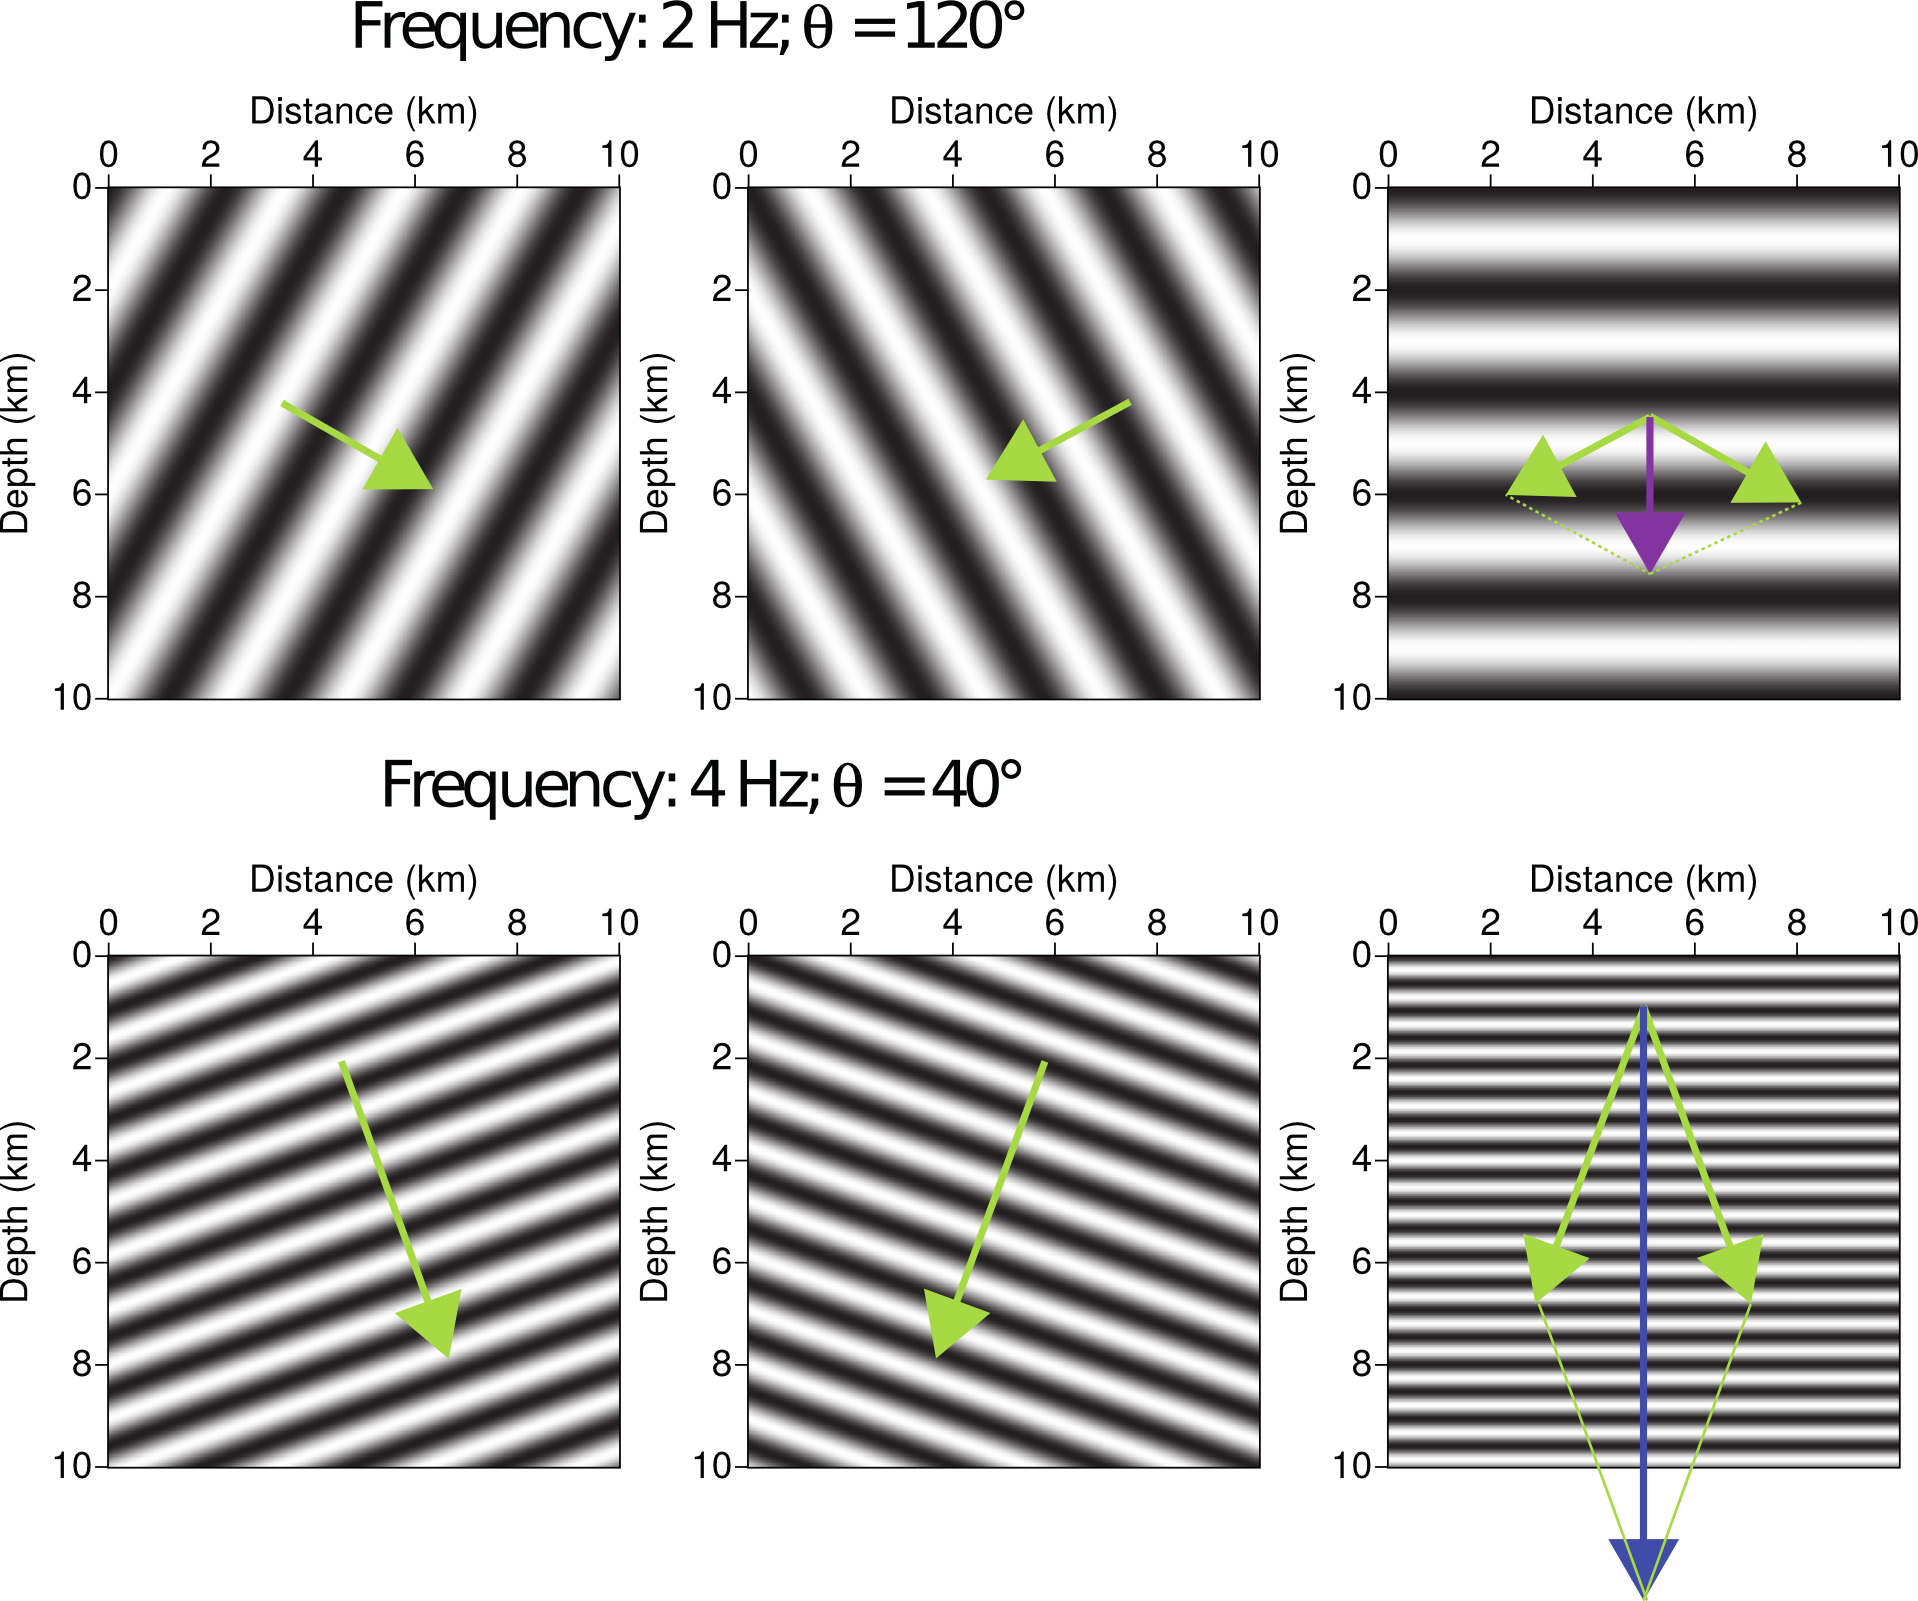 fig_freq_versus_angle.png